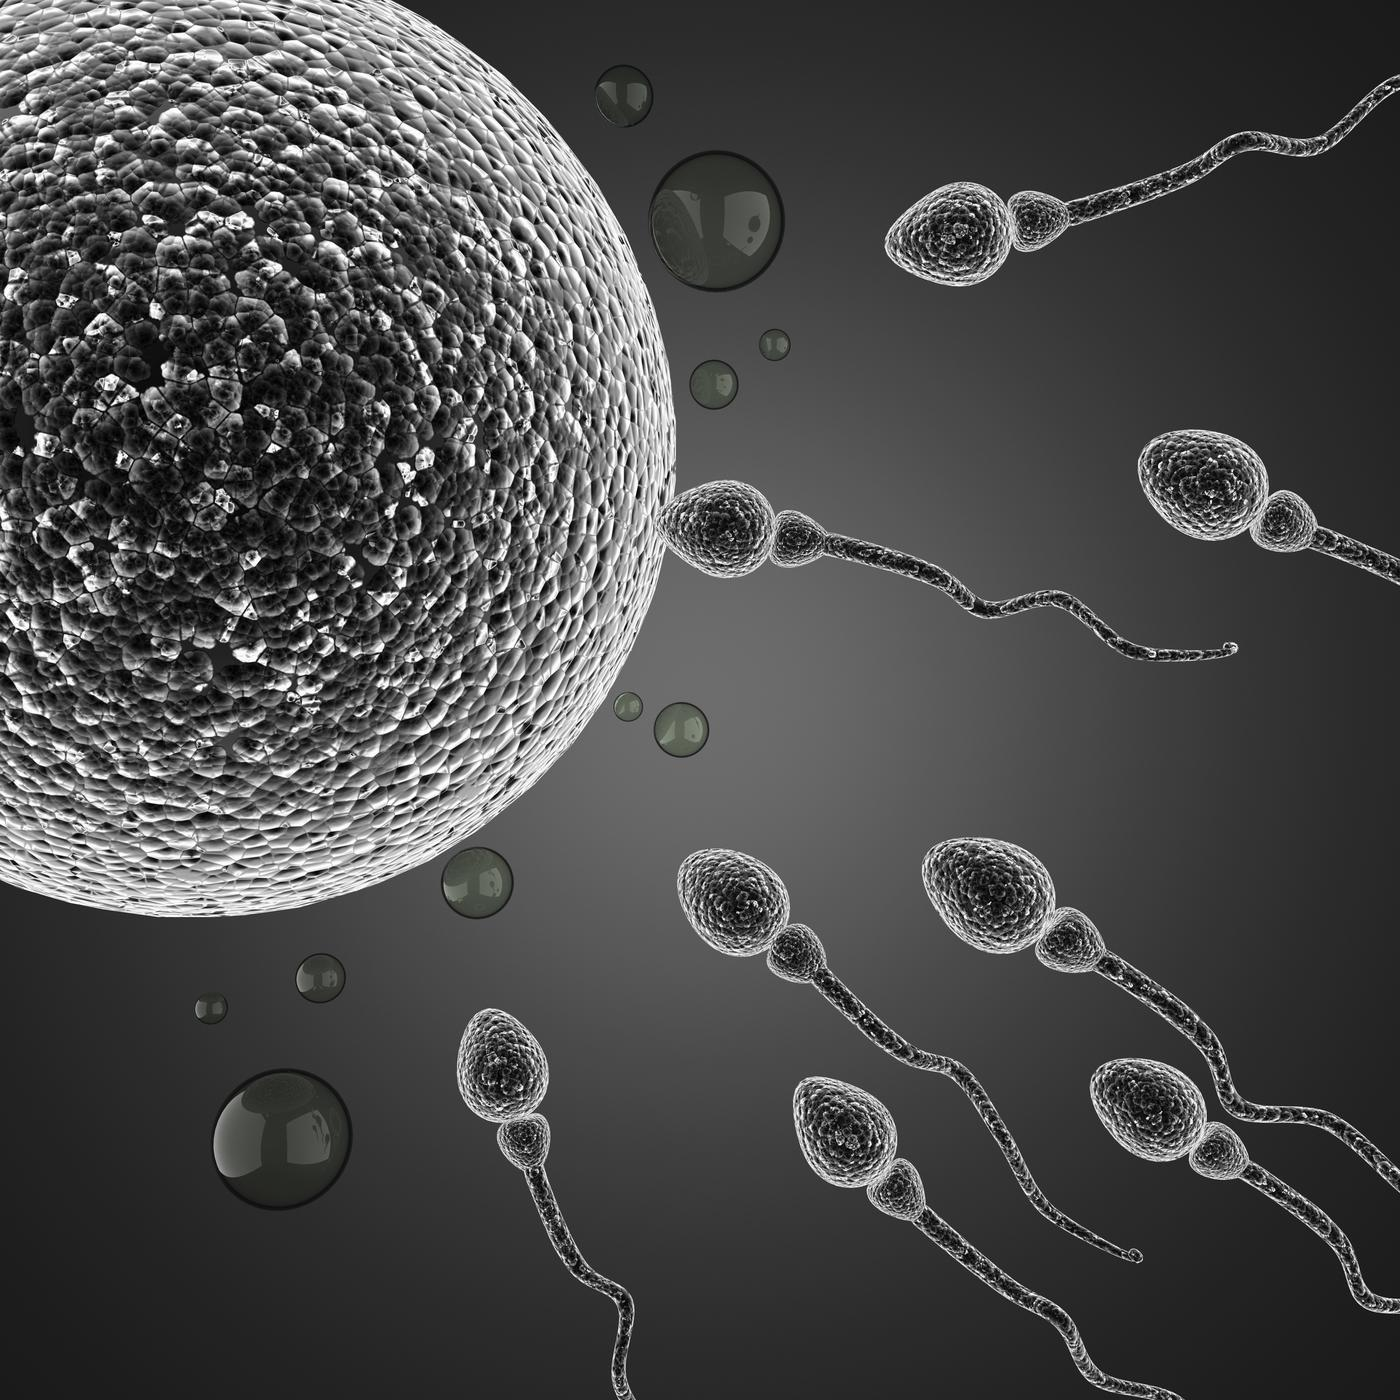 Time for men to ditch the soy as study reveals a vegetarian diet lowers sperm count